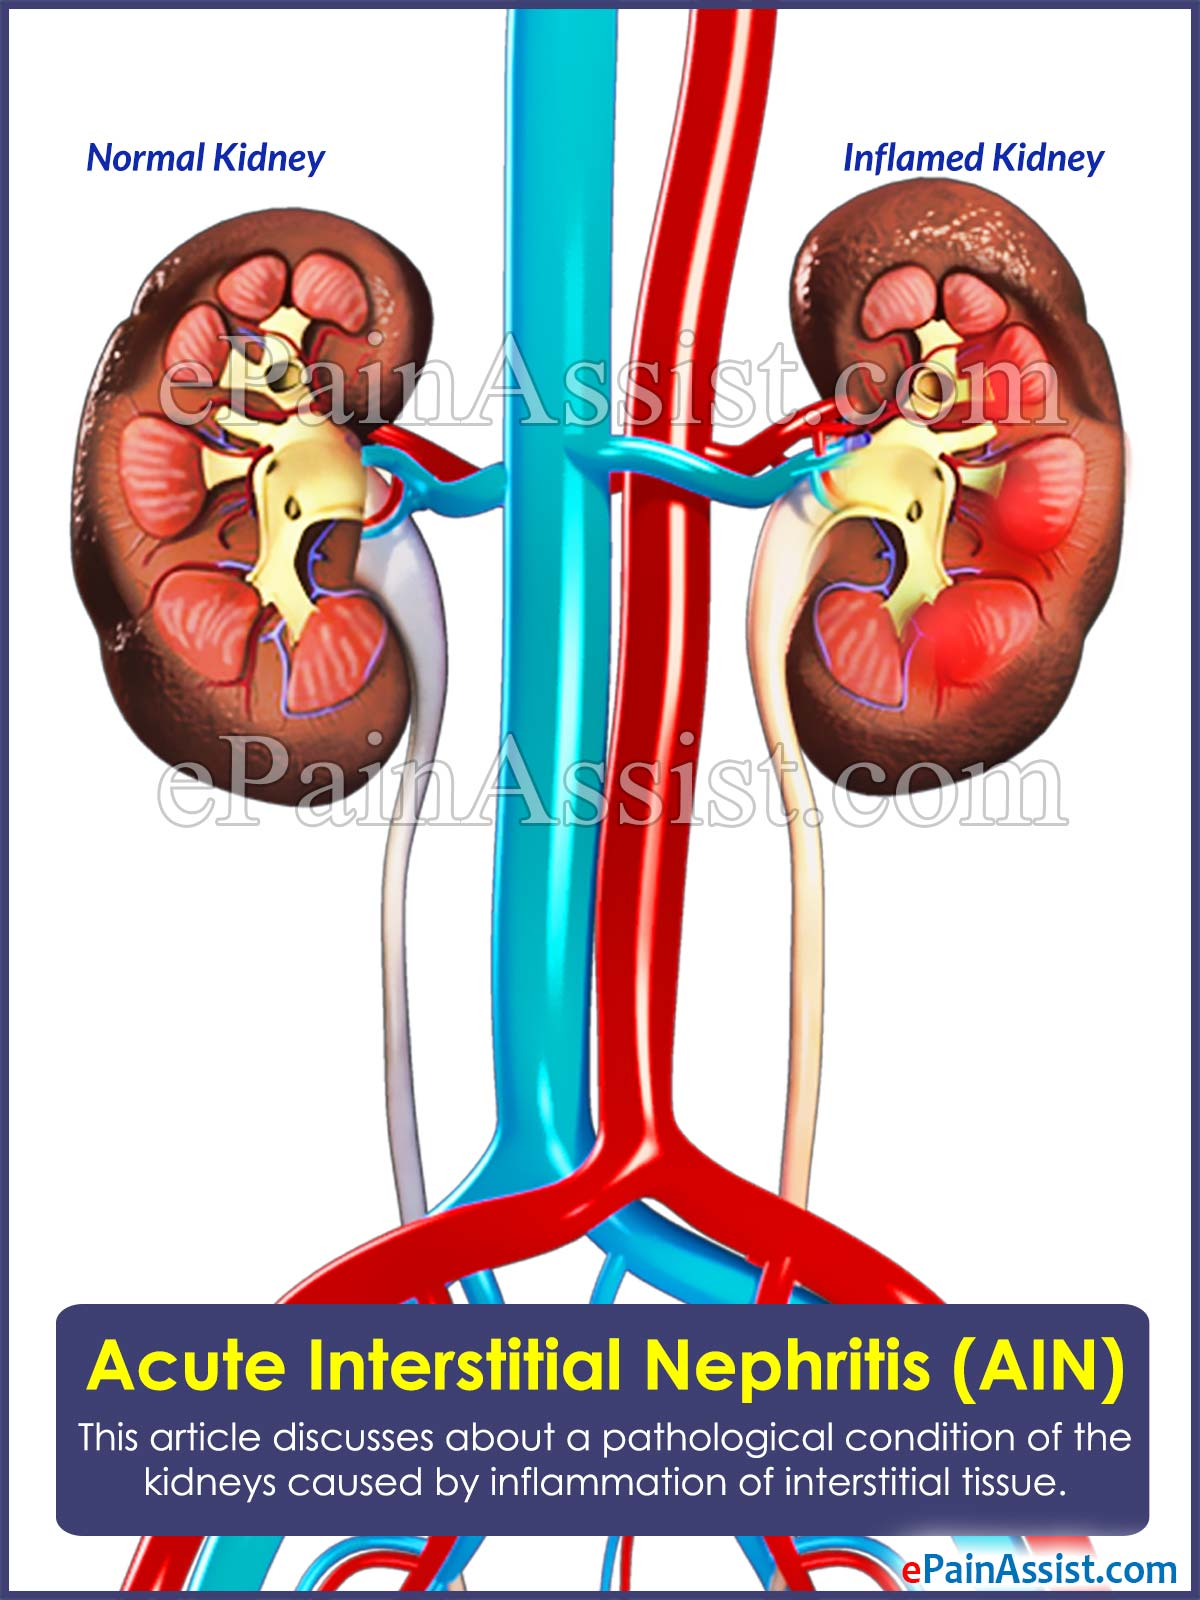 Acute Interstitial Nephritis (AIN)